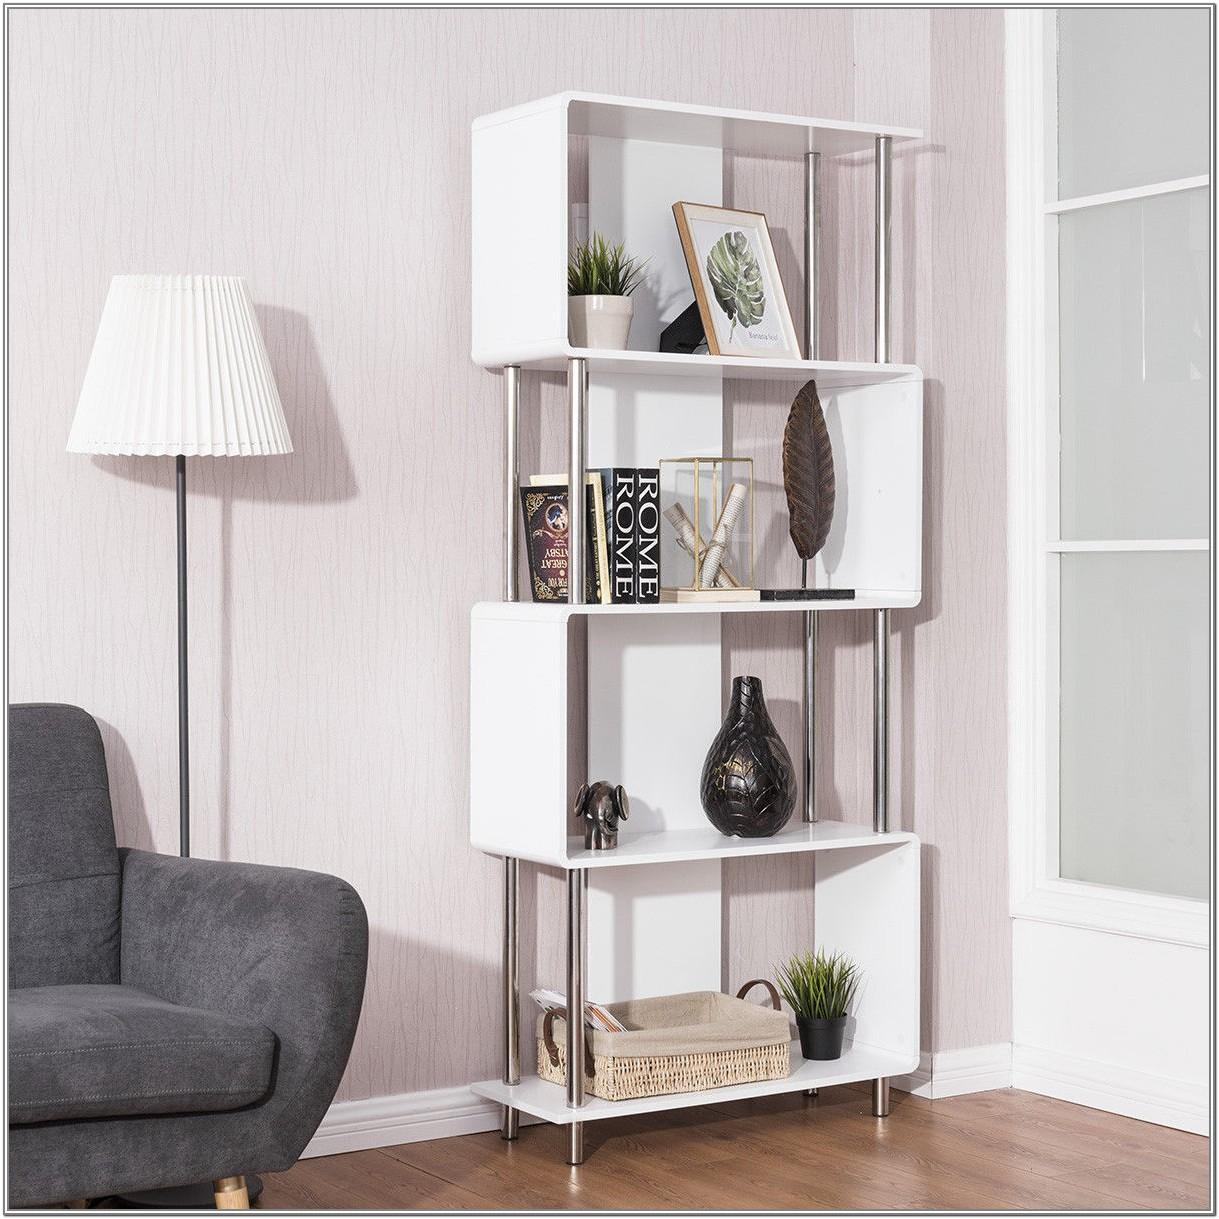 Living Room Cabinet With Shelves